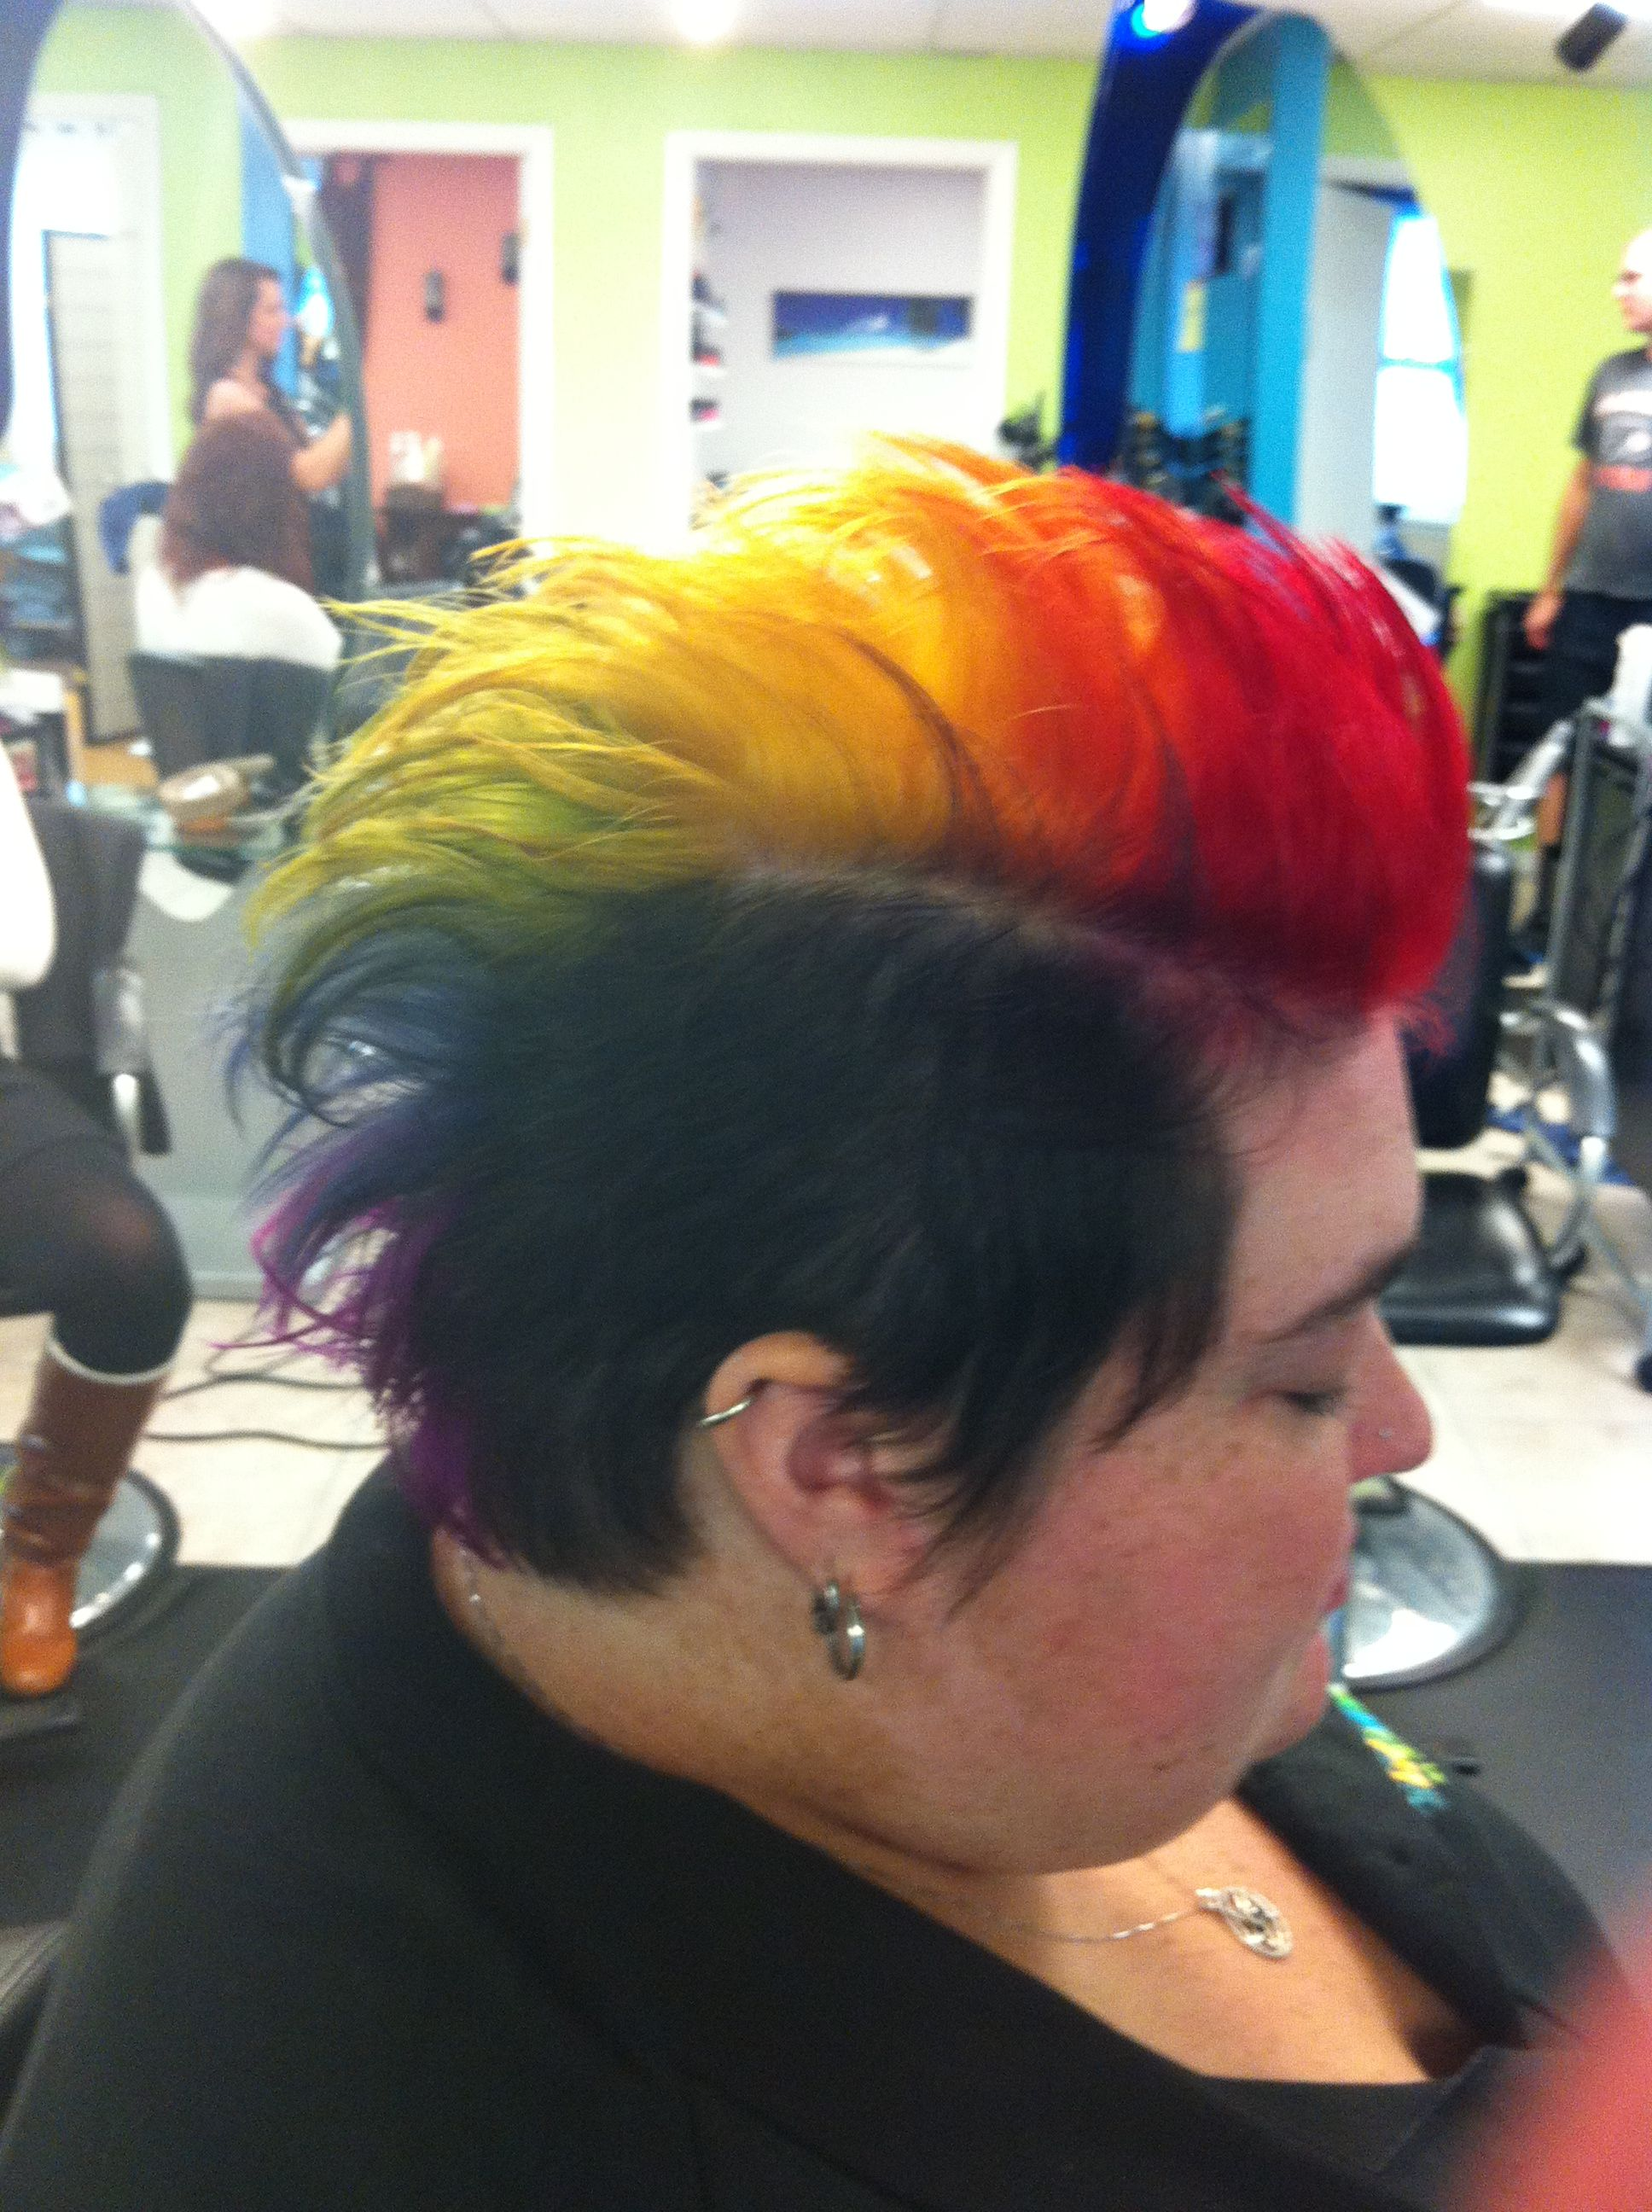 Rainbow mohawk we did for a dj from a local radio station for their